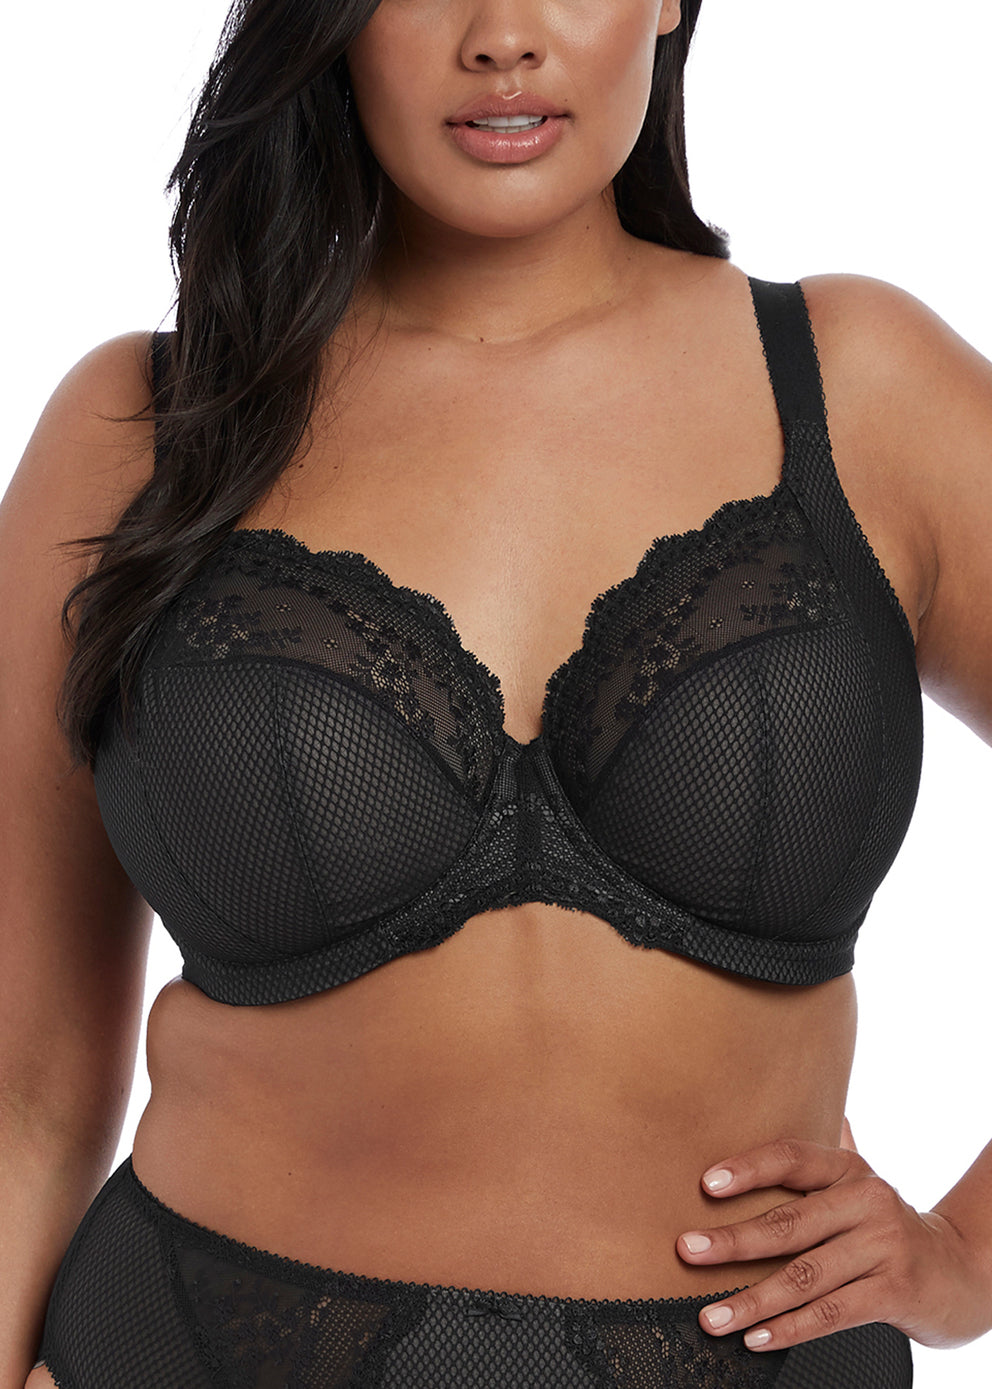 EL4382BLK Charley UW Plunge - Stretch |BLACK|